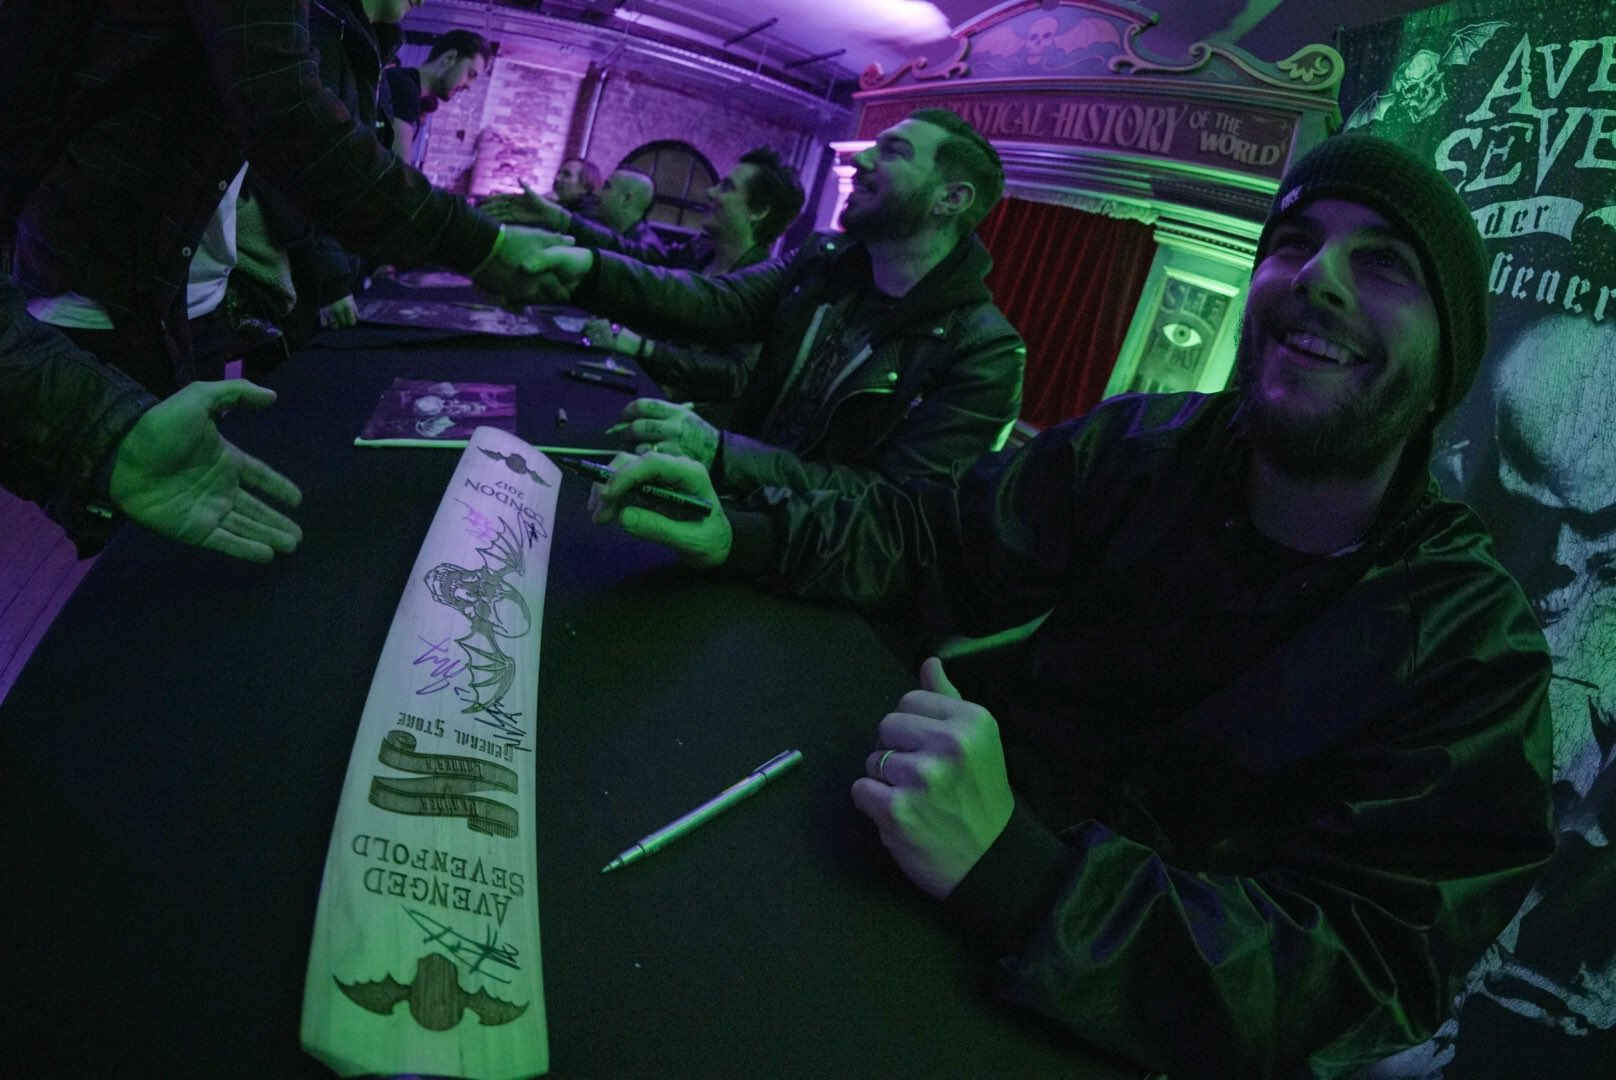 Vlauder Lauders General Store Meet and Greet Signing! Thank you everyone! #thestageworldtour ��: @rafacore https://t.co/O4RsgKCp17